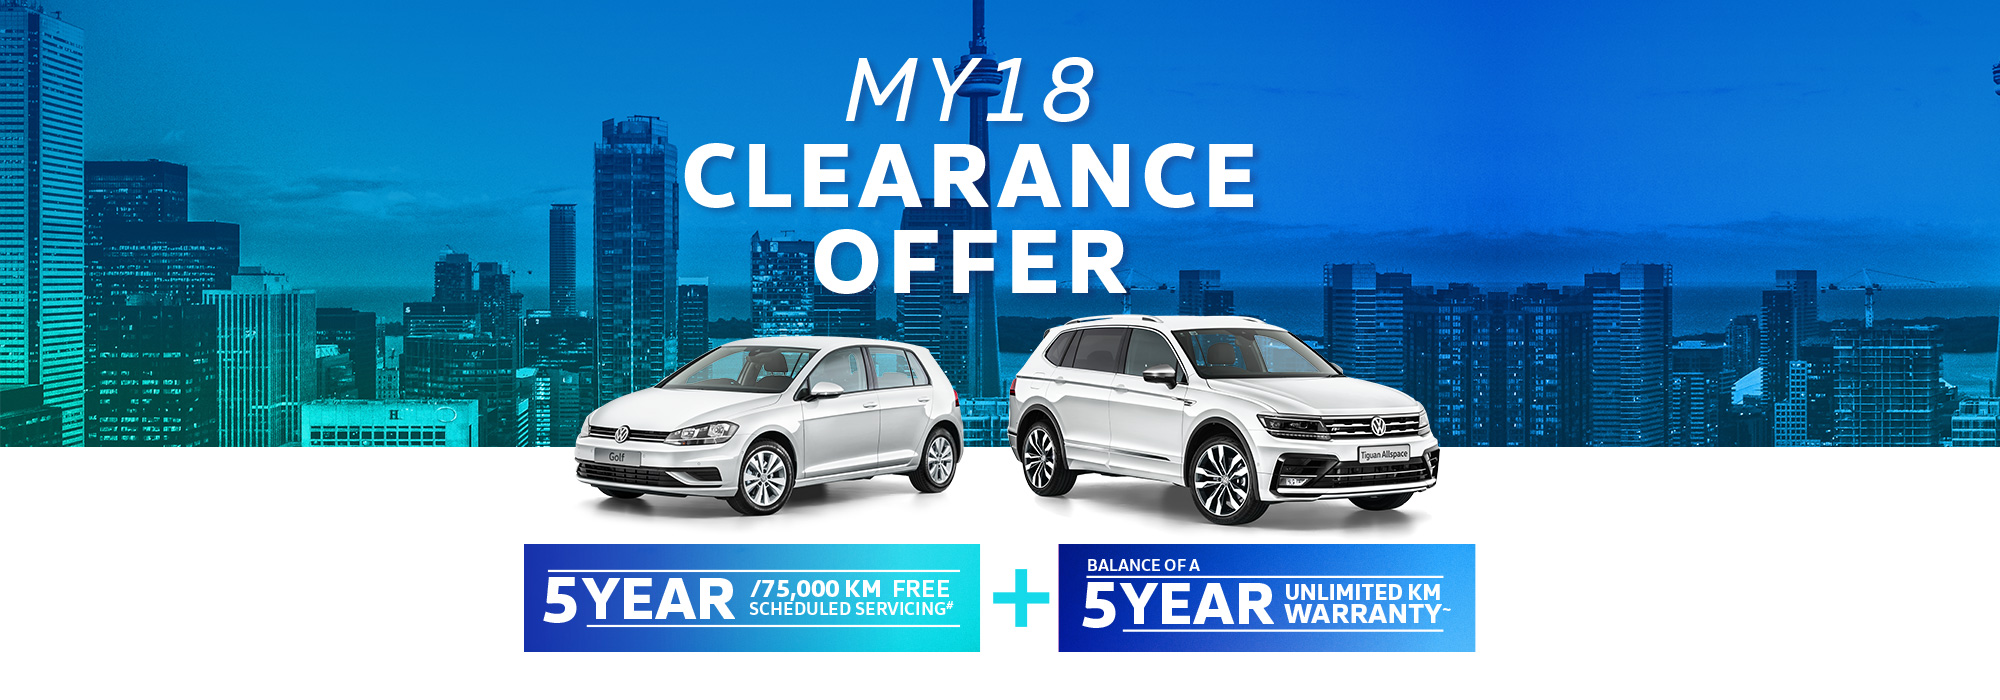 MY18 Clearance Offer